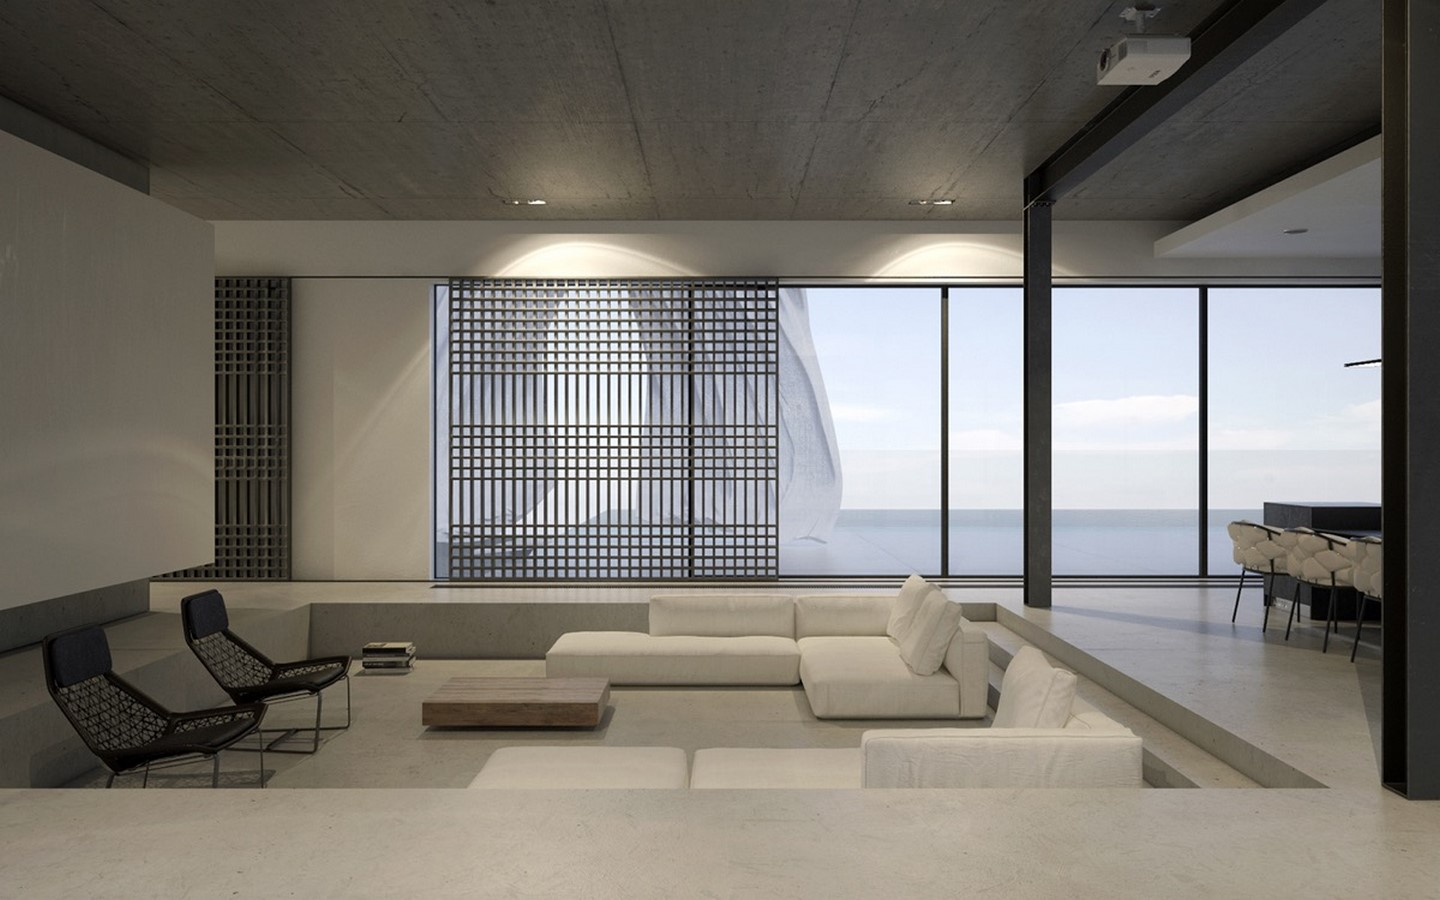 50 Living rooms enhanced by concrete - Sheet26